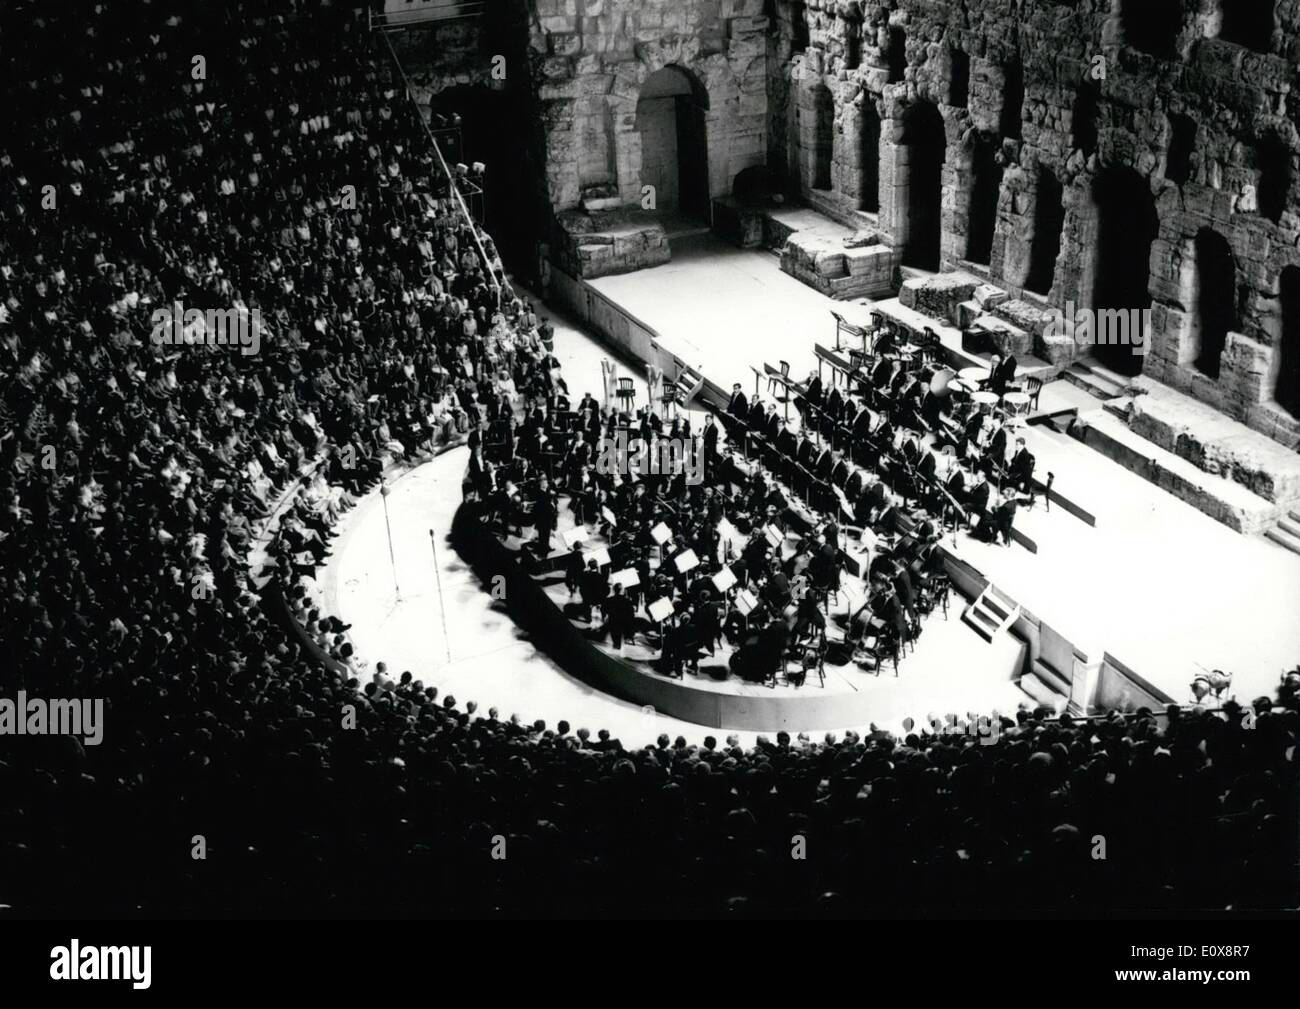 Sep. 09, 1965 - 8,000 people attended the concert last night, which was conducted by Herbert von Karajan for the Athens Festival. King Constantin, Queen Anna-Maria, and the princesses Irene, Sophie, and Benedikte (of Denmark) were applauded by a number of spectators. Pa - Stock Image